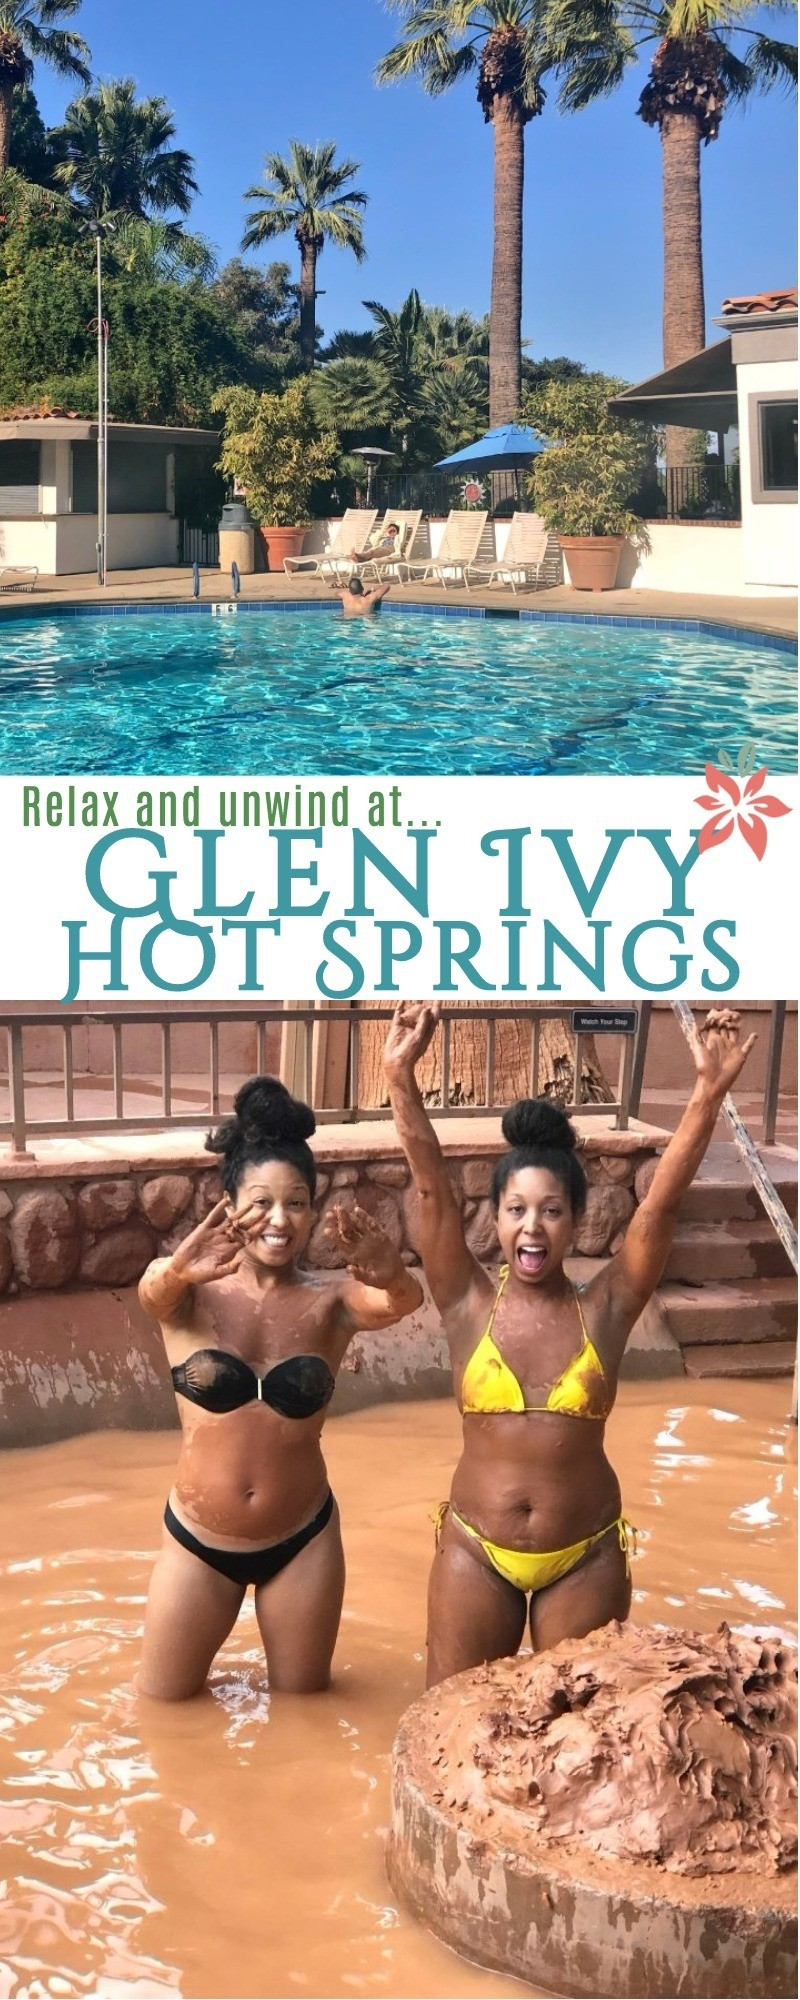 Time To Relax and Unwind at Glen Ivy Hot Springs Spa in Corona, California! If you're looking for a SoCal escape to relax, unwind, and get away from the day to day, then this is the place!